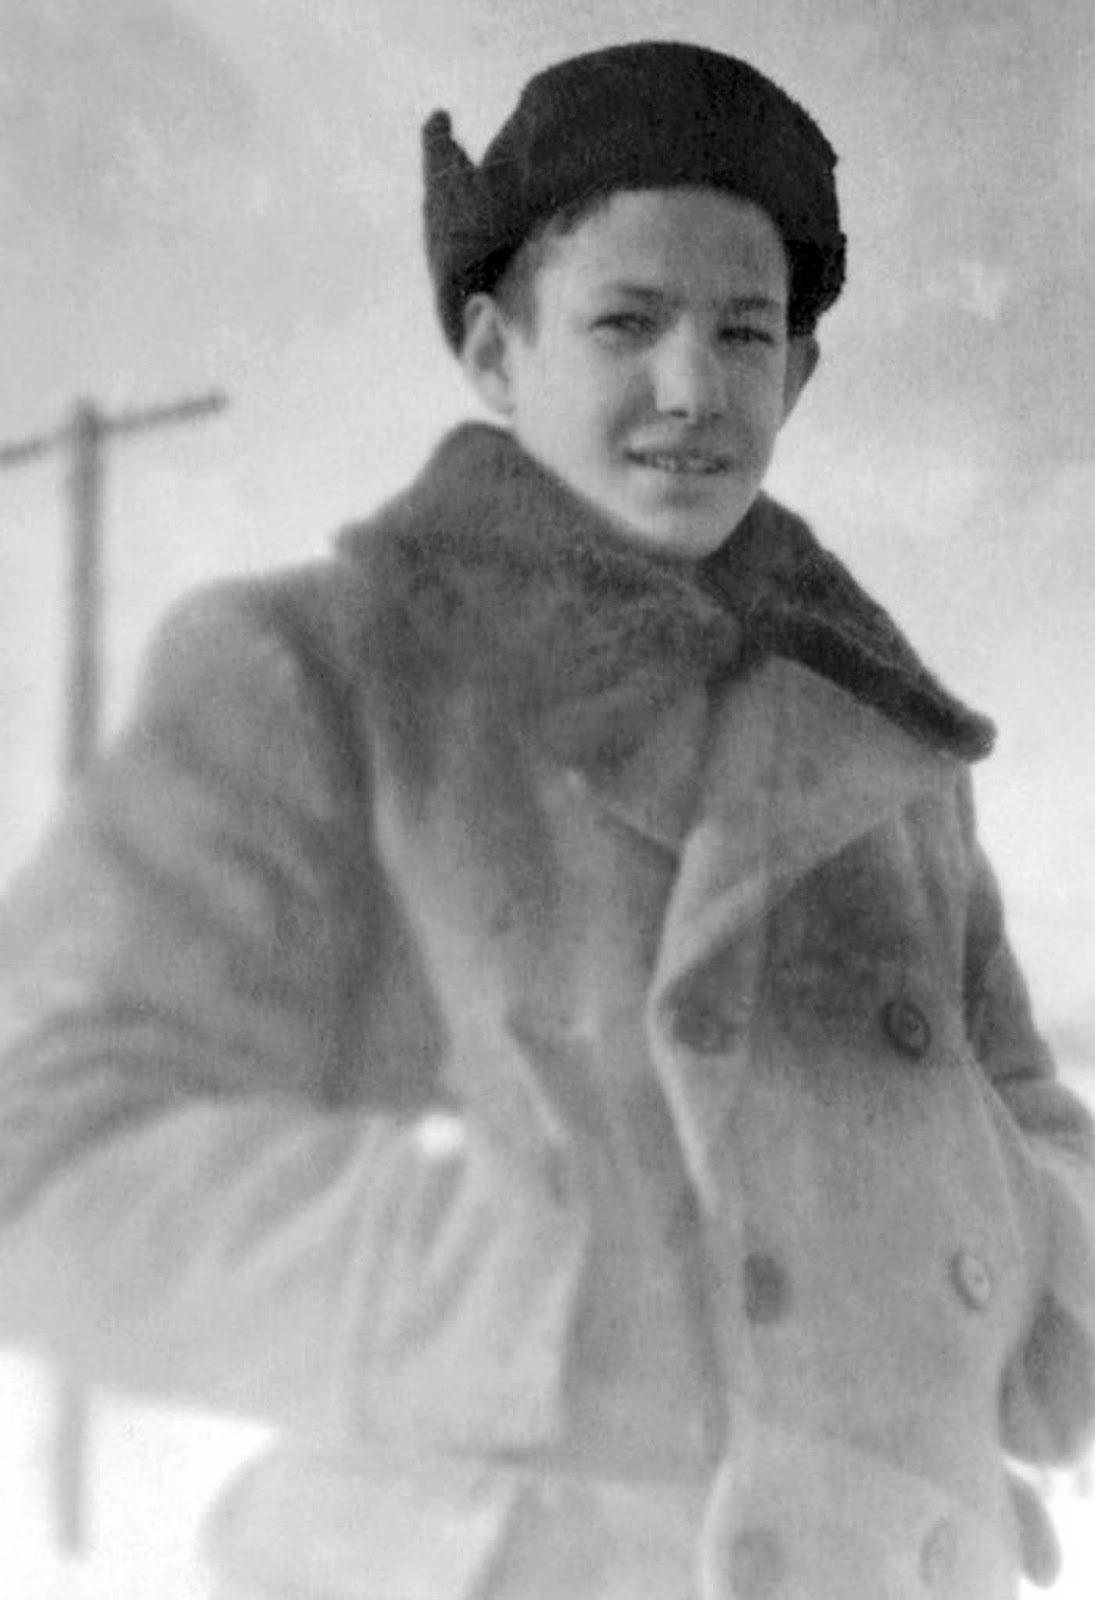 Yeltsin during high school. 1948.